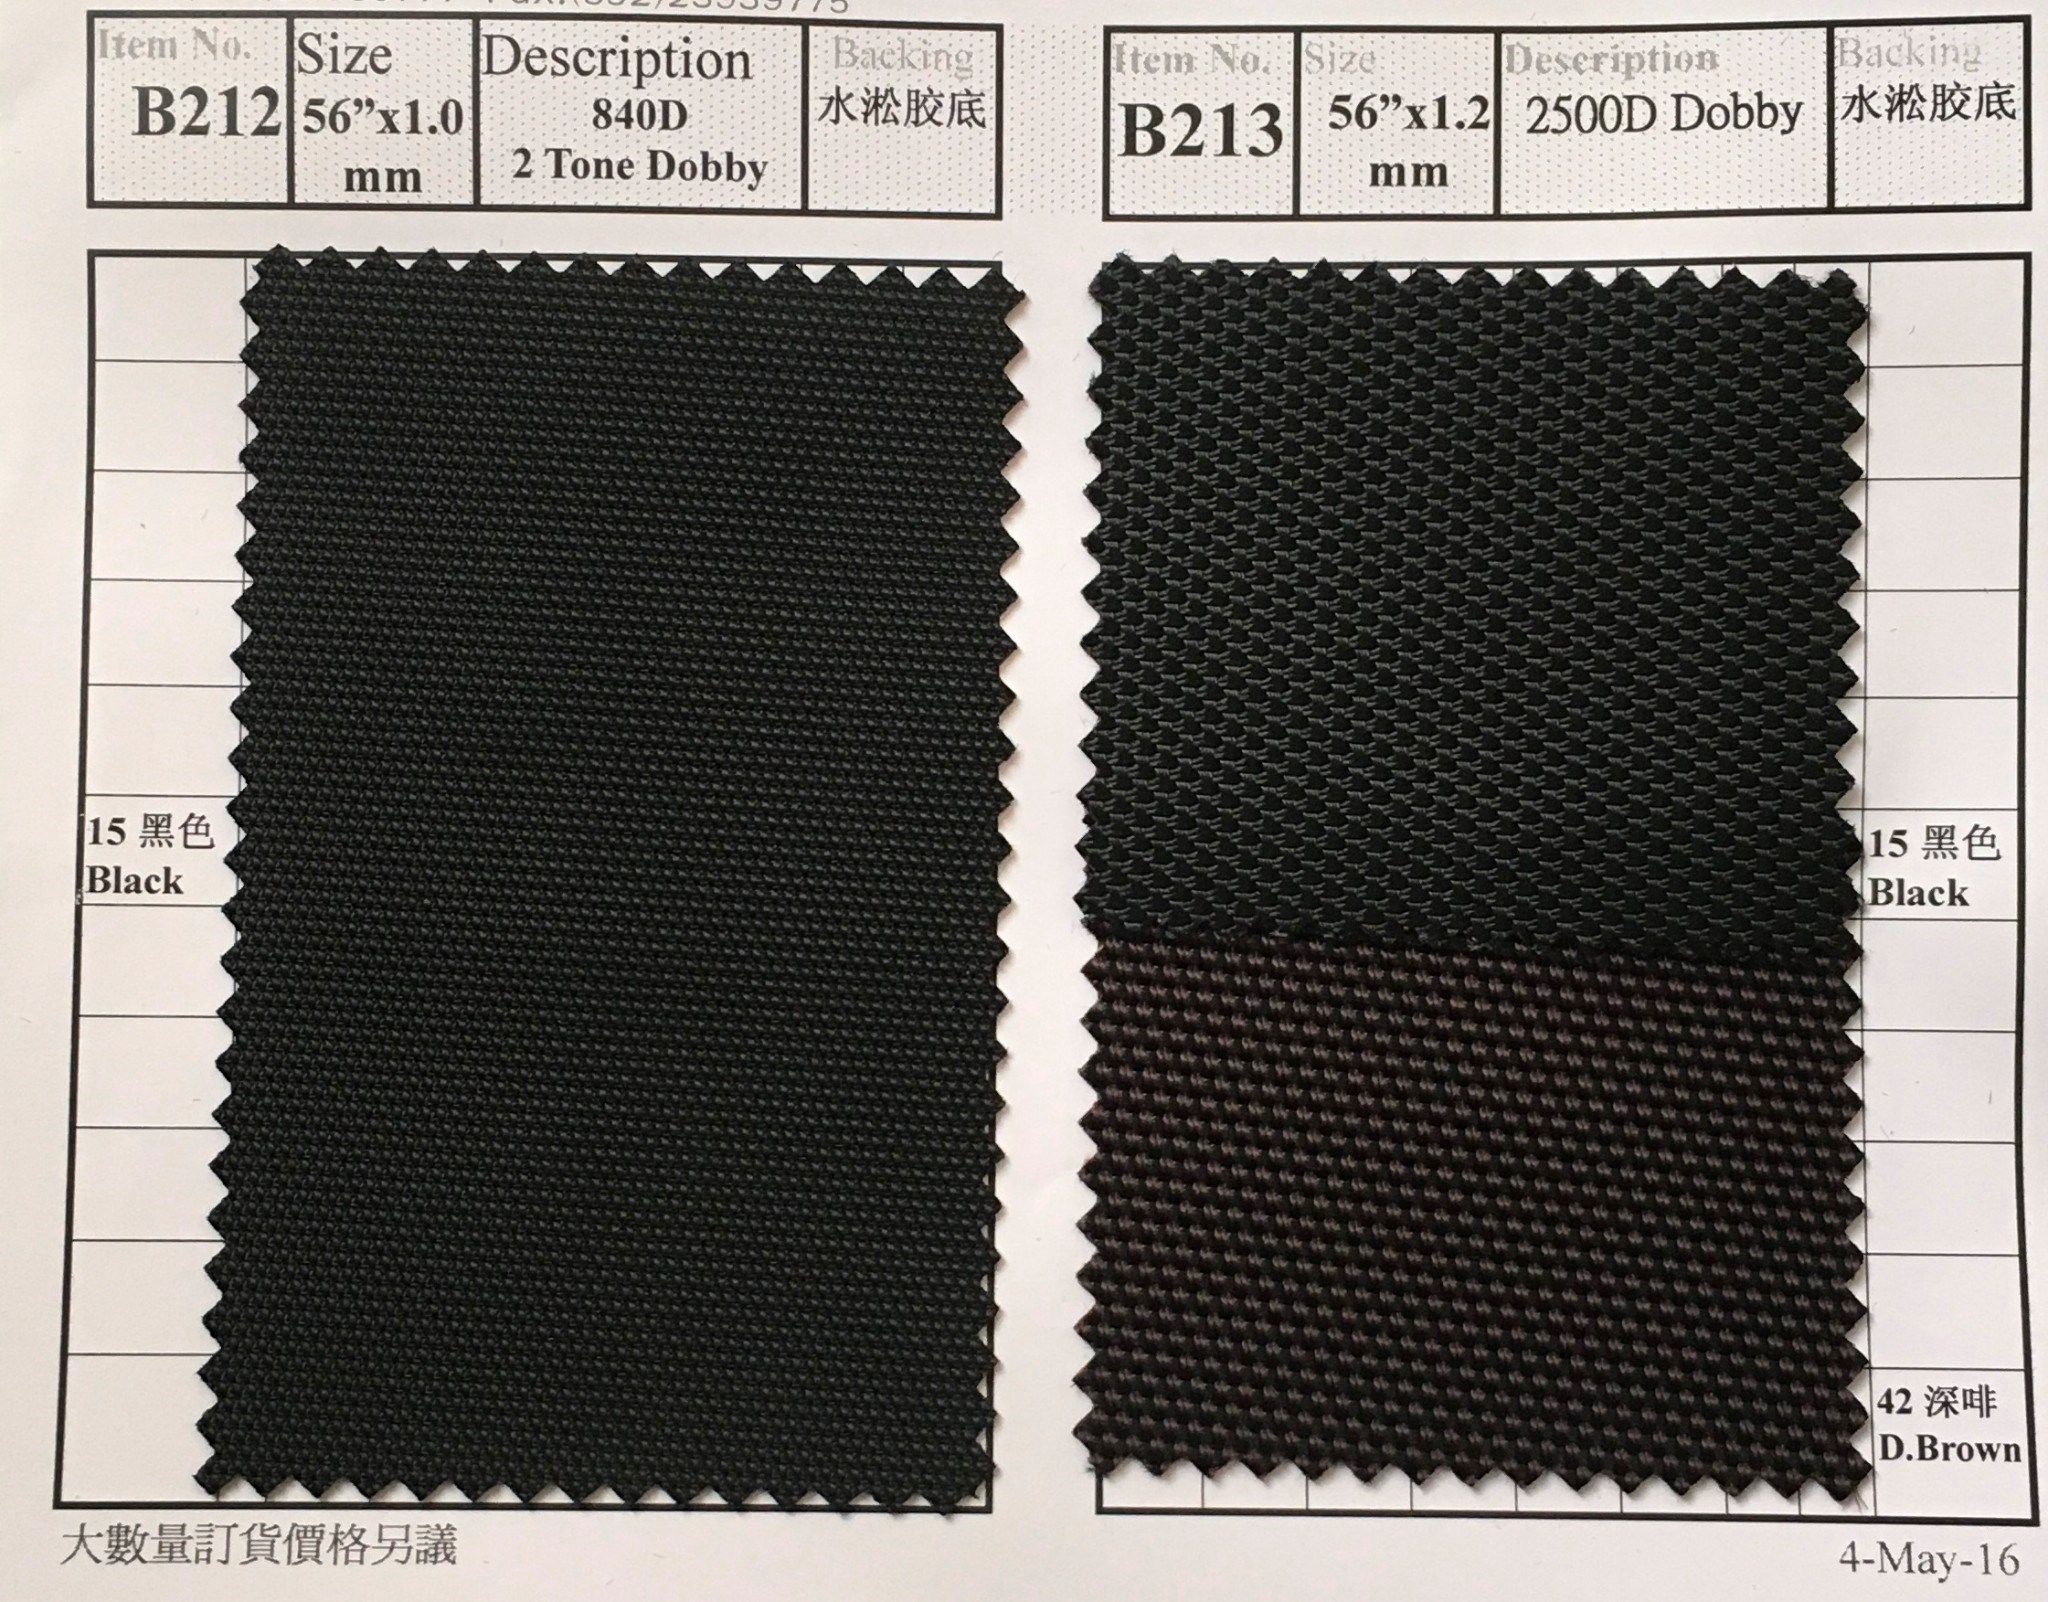 item b212 b213 840d two tone dobby and 2500d dobby backing rubber